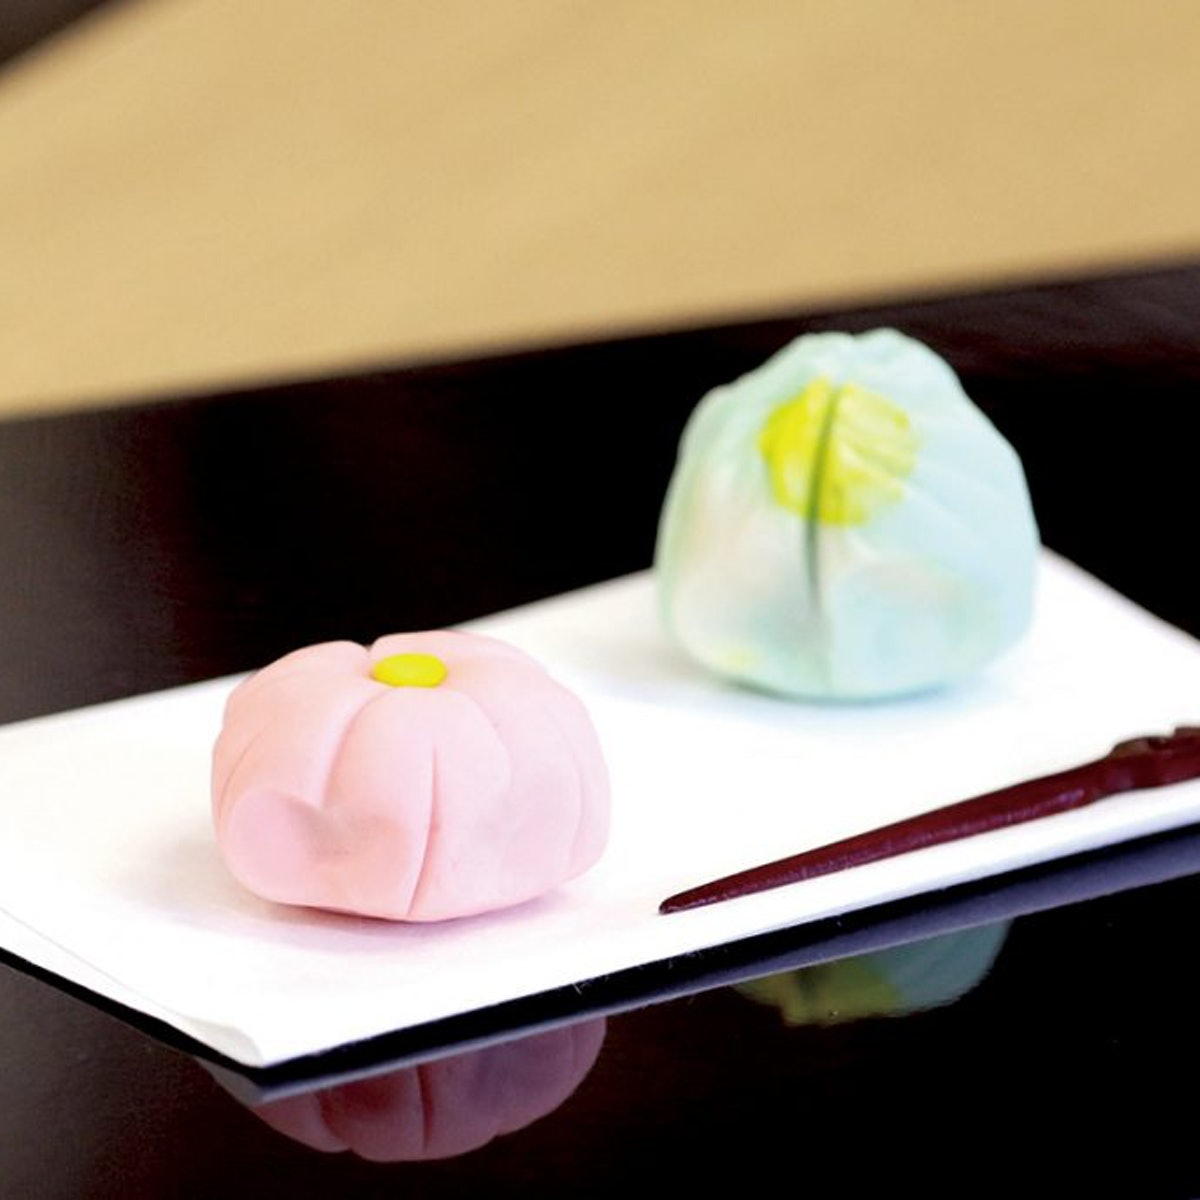 Learn to make traditional Japanese sweets (Near Tokyo Tower)